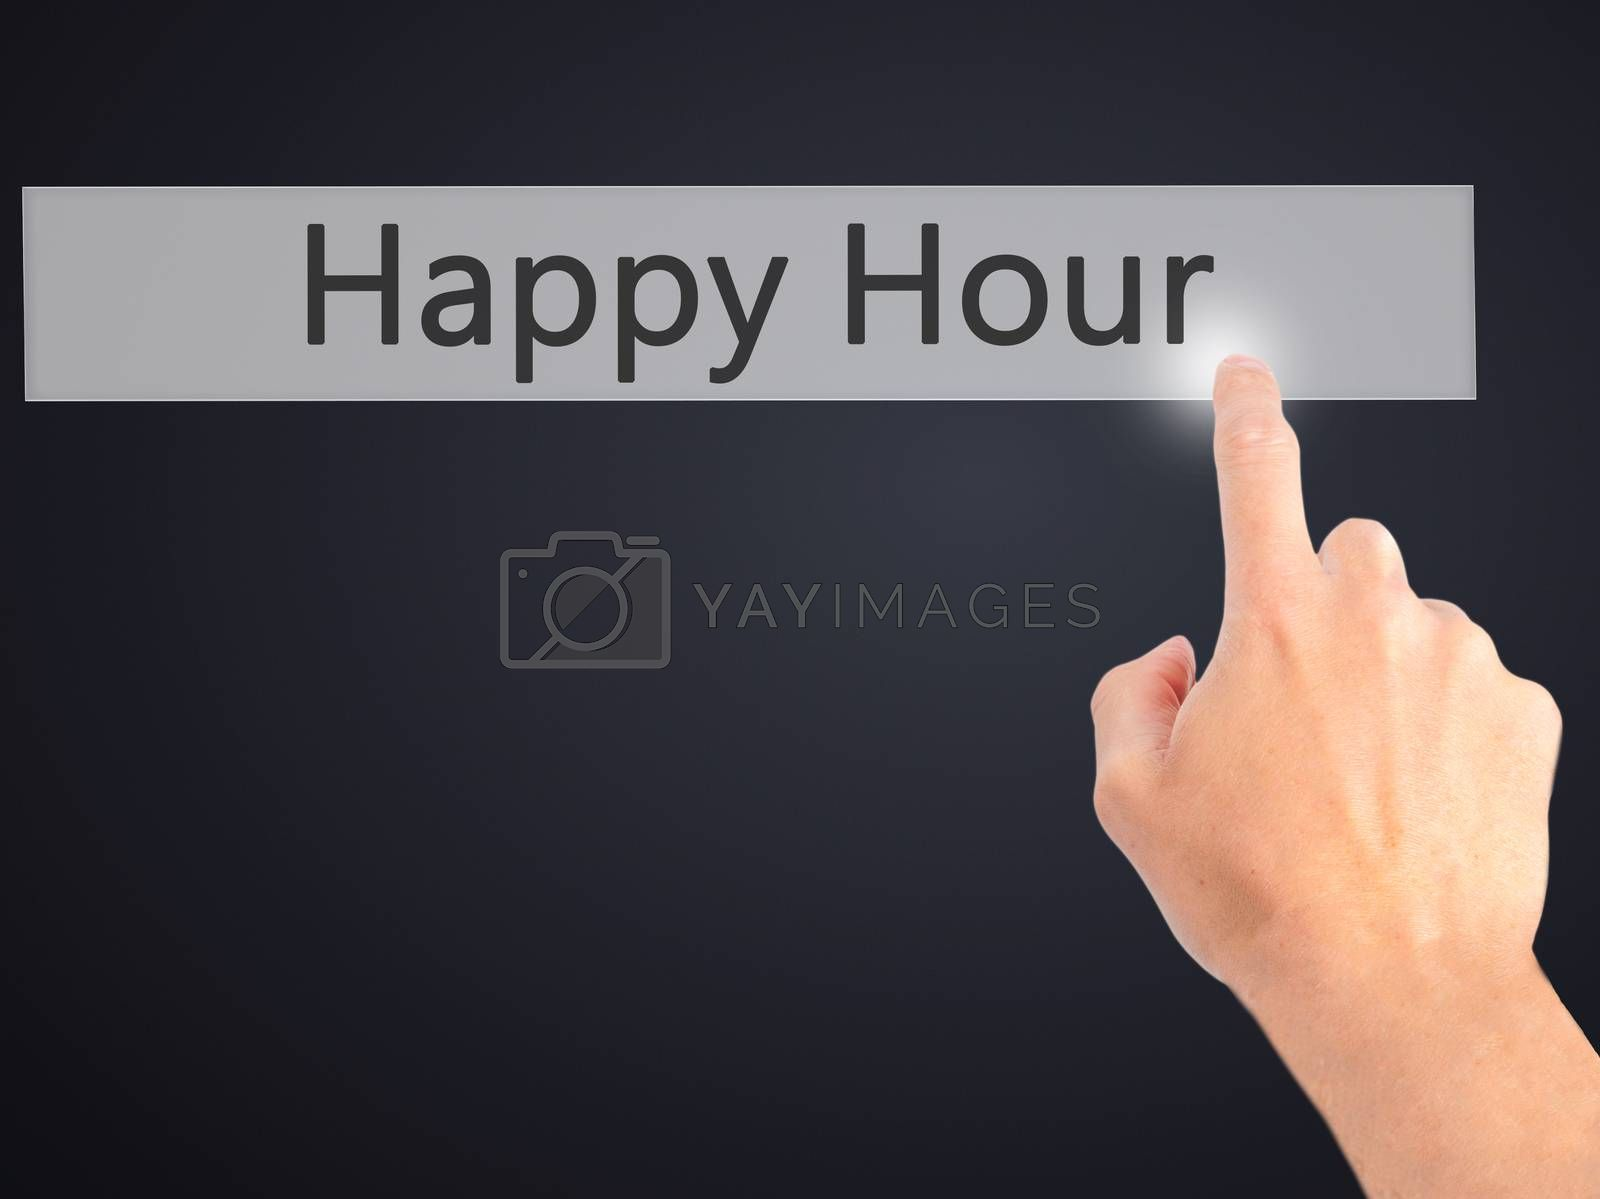 Happy Hour  - Hand pressing a button on blurred background conce by netsay.net